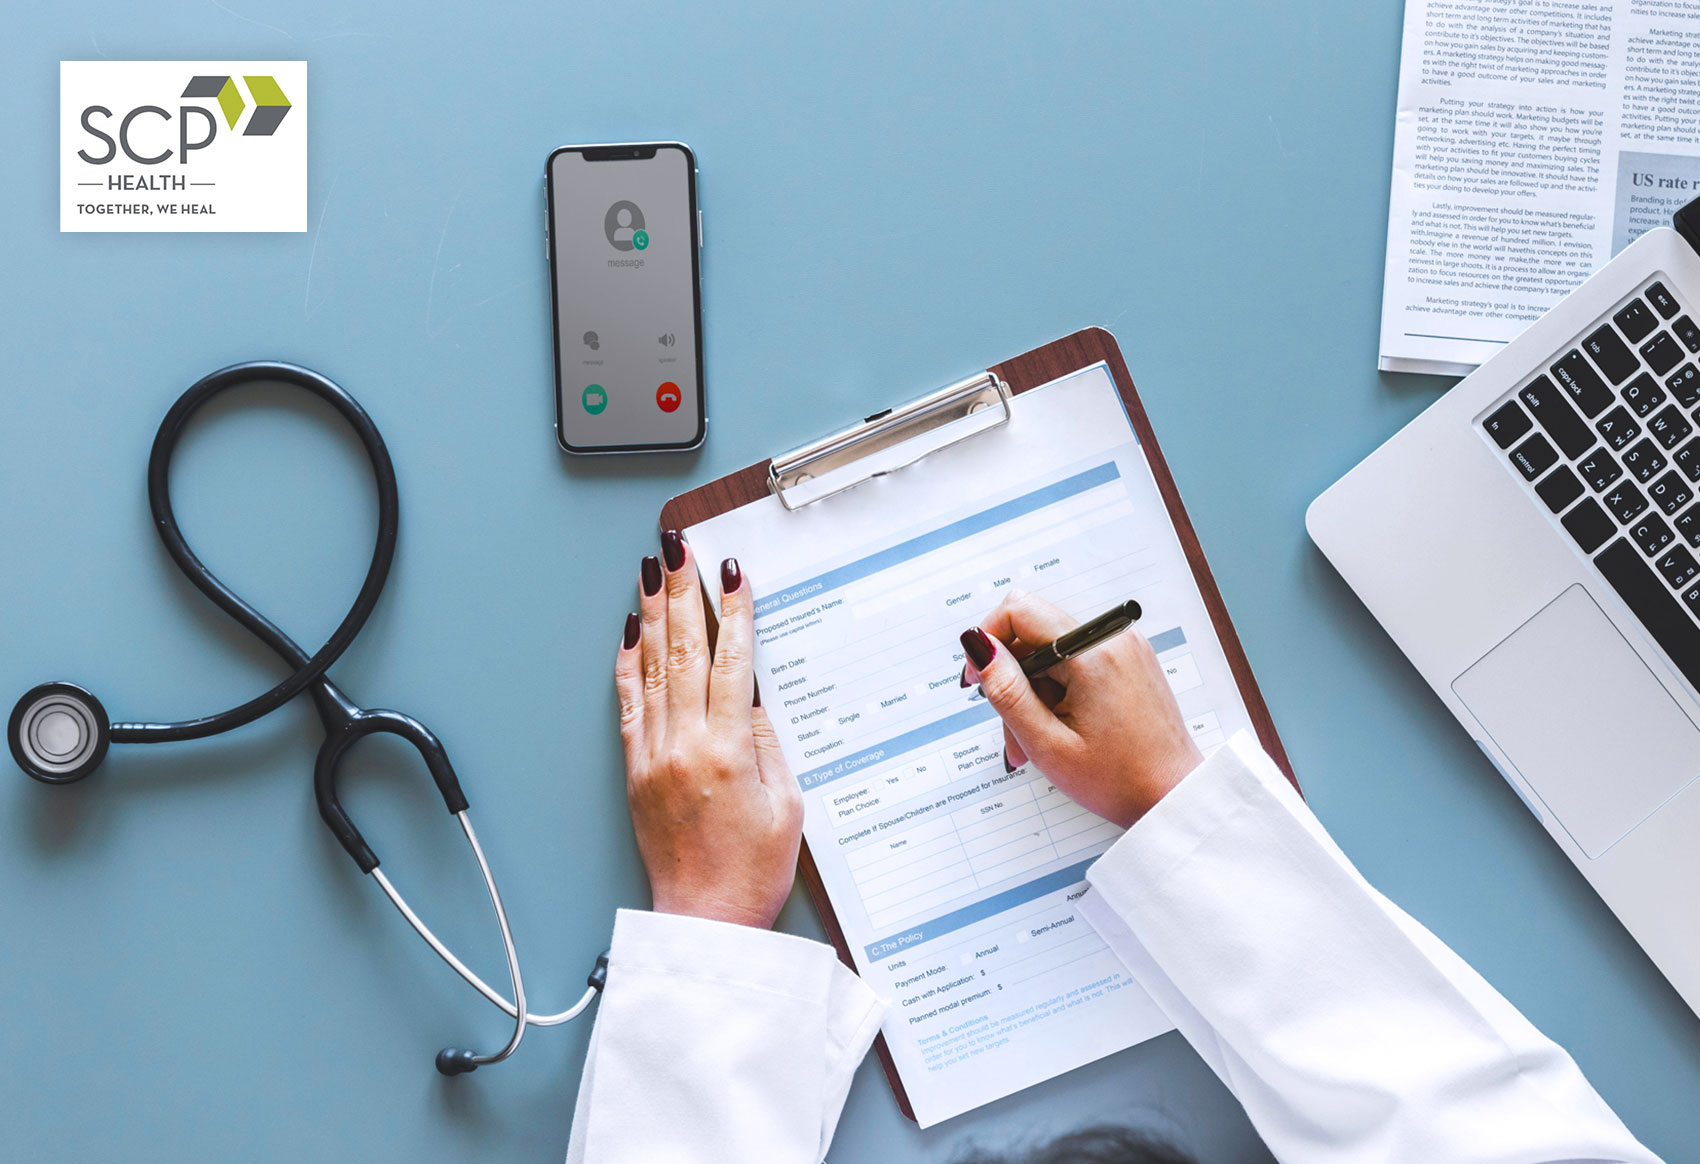 sm-scp-health-overview-of-items-on-female-doctors-desk